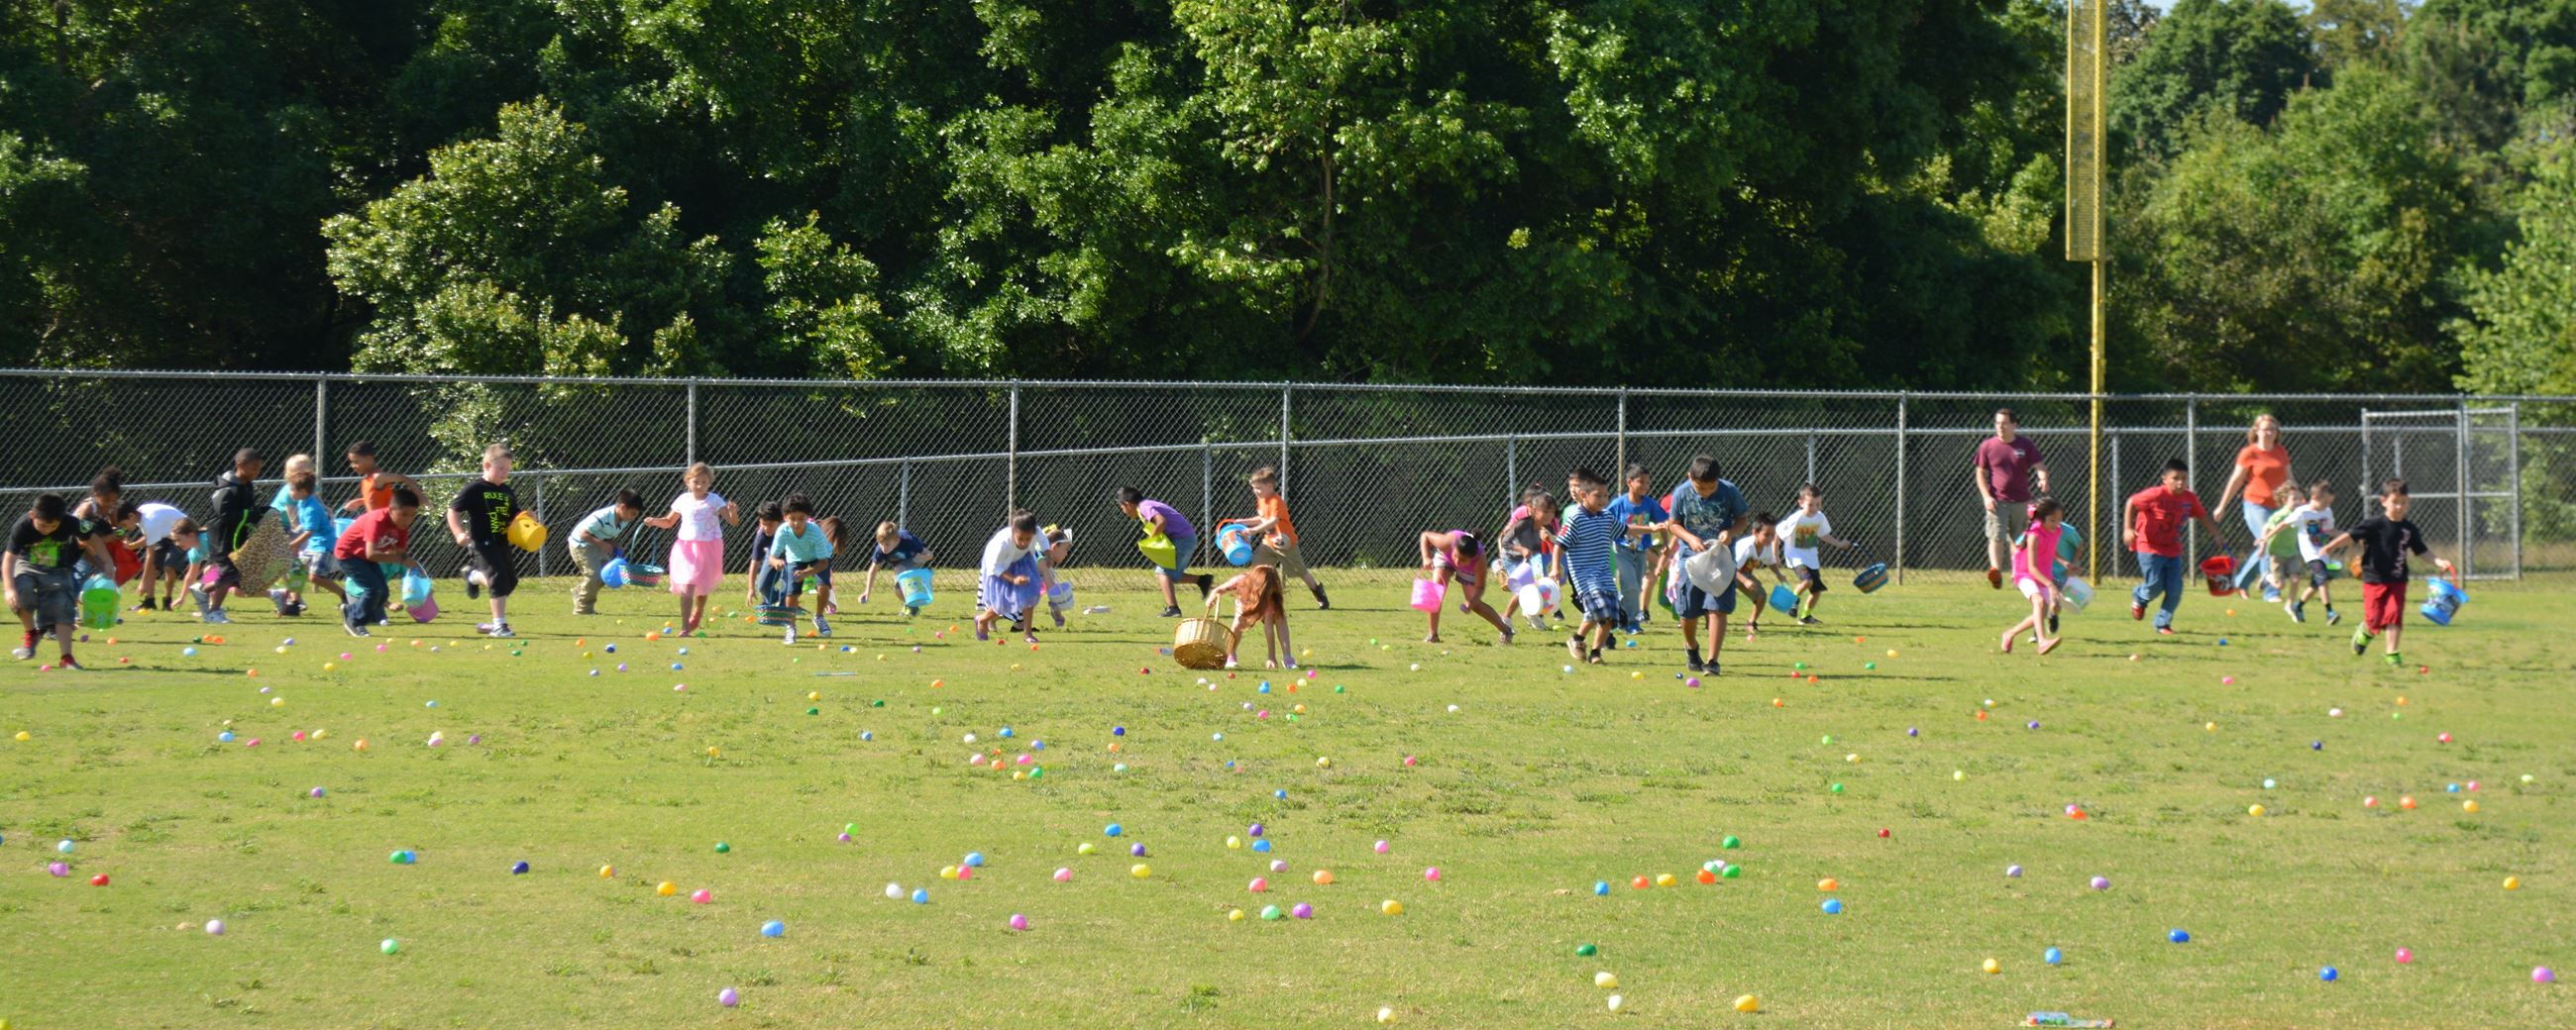 Kids gathering Easter eggs out on the field. (image)